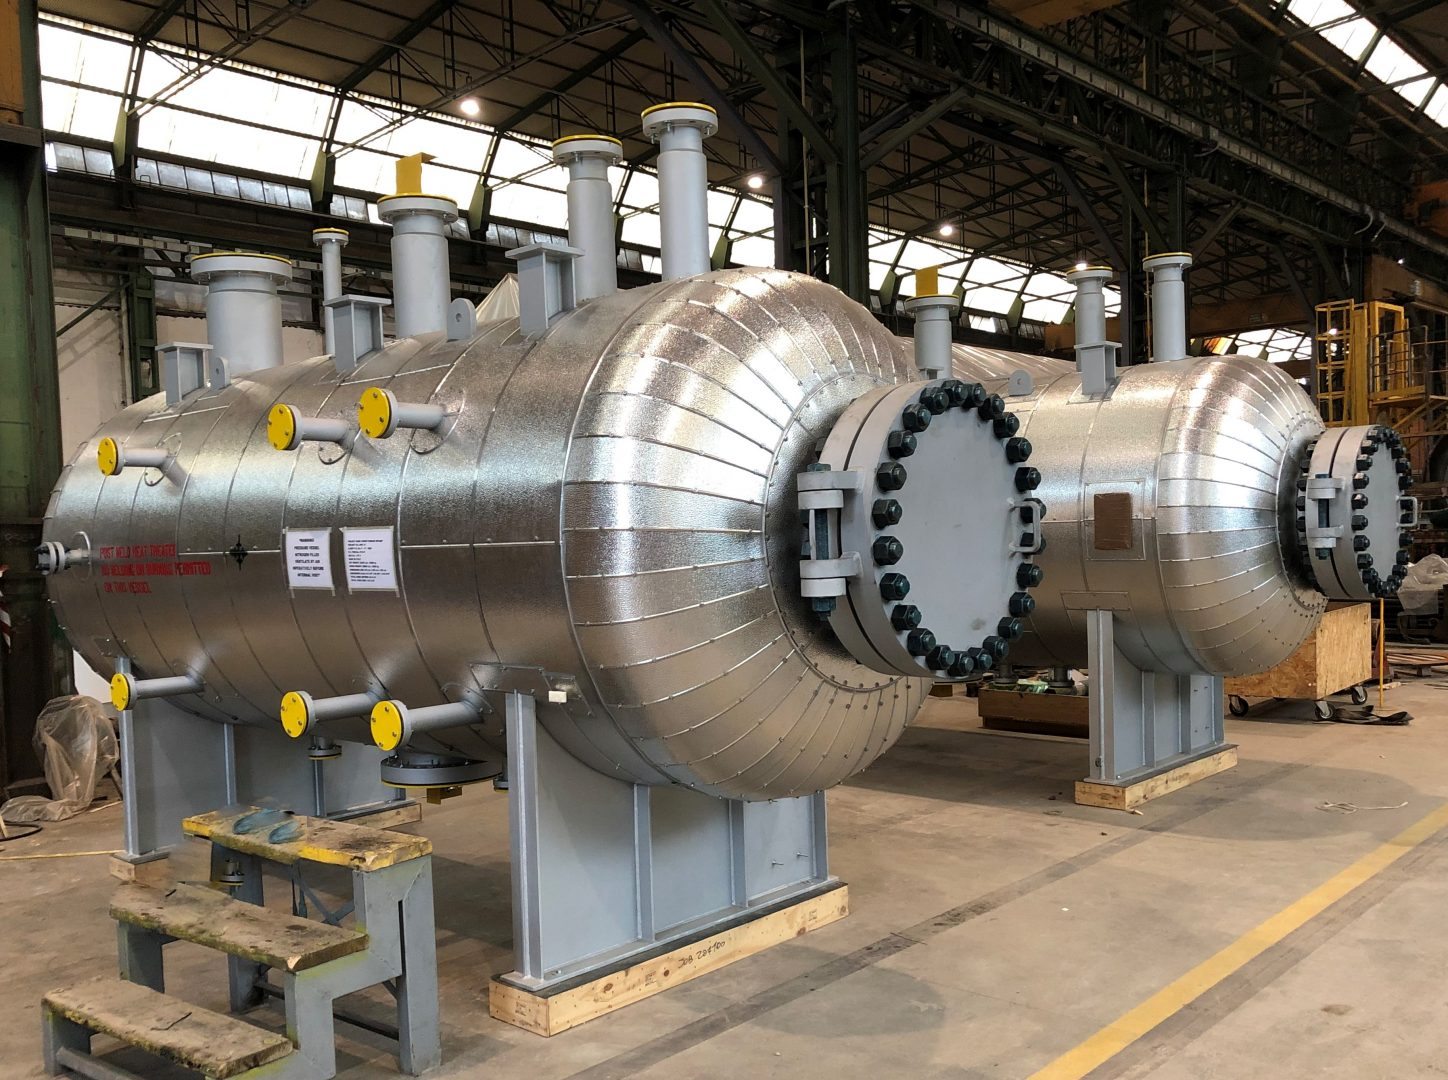 Steam Drums in SA 516 Gr. 70 with external insultation and lagging in aluminum at Pine Bend plant – Size: 5.305 x 1.600 mm; 12 t – Minnesota, USA